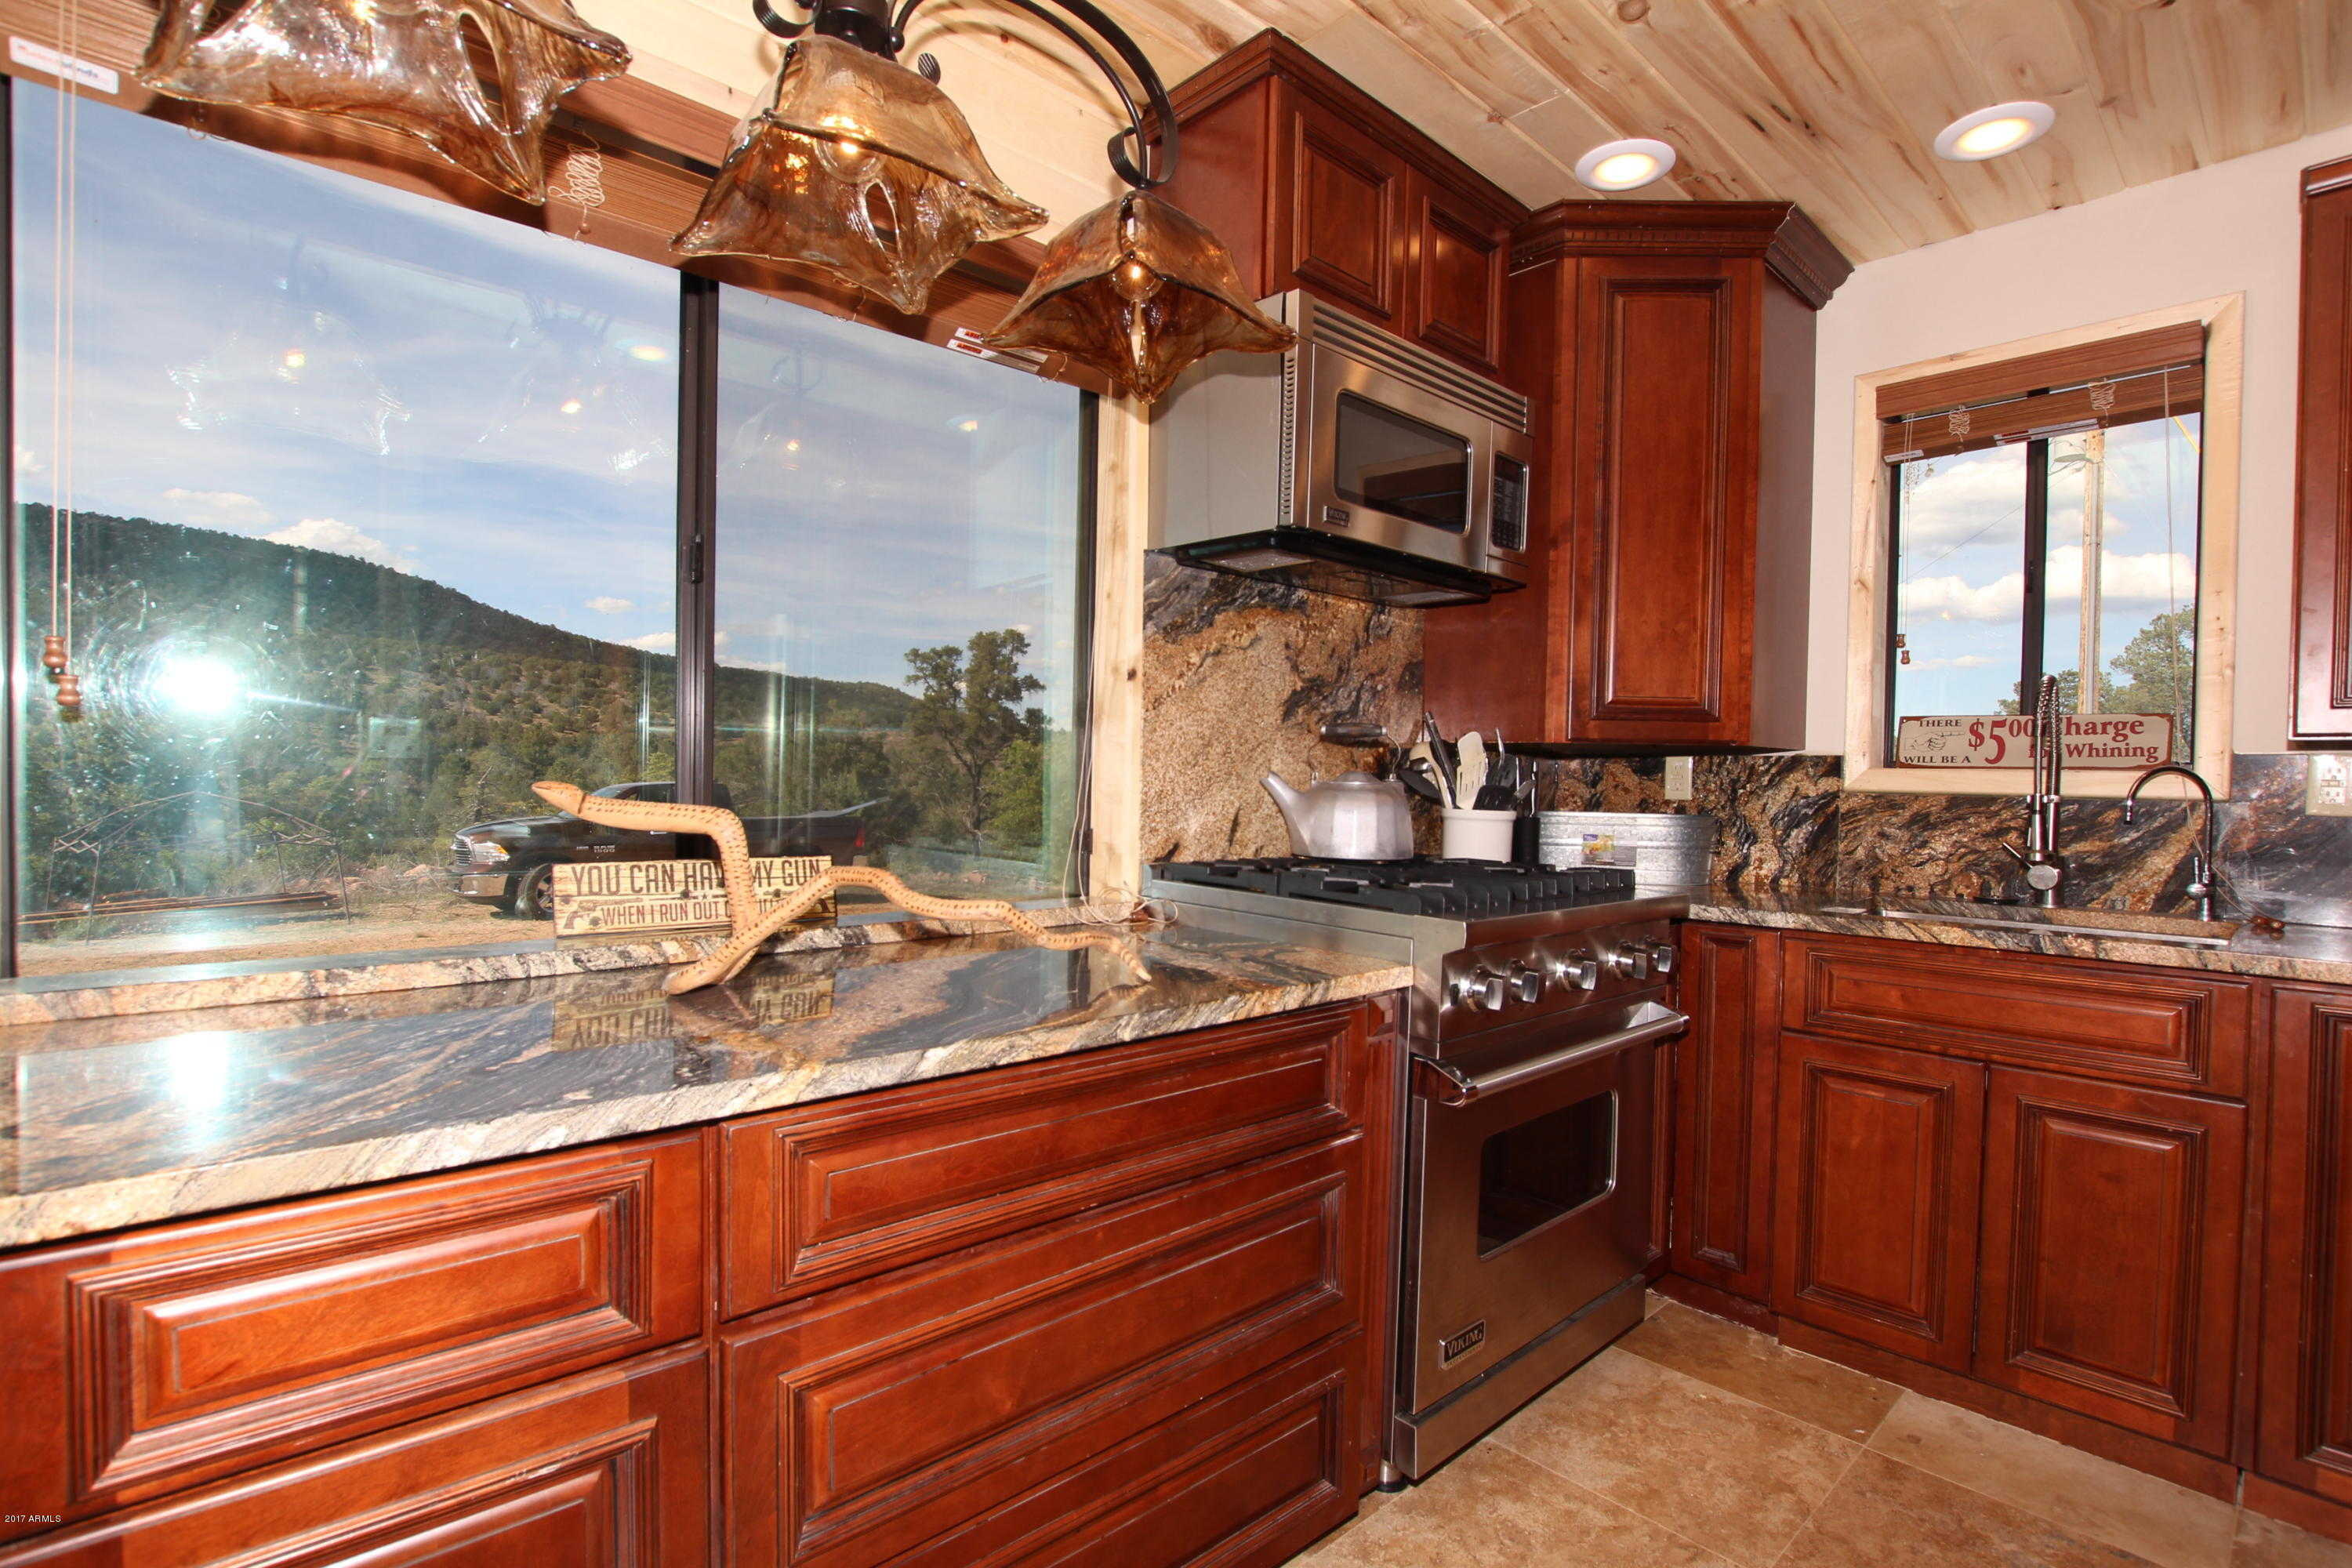 $400,000 - 2Br/1Ba - Home for Sale in Top Of The Mountain, Young